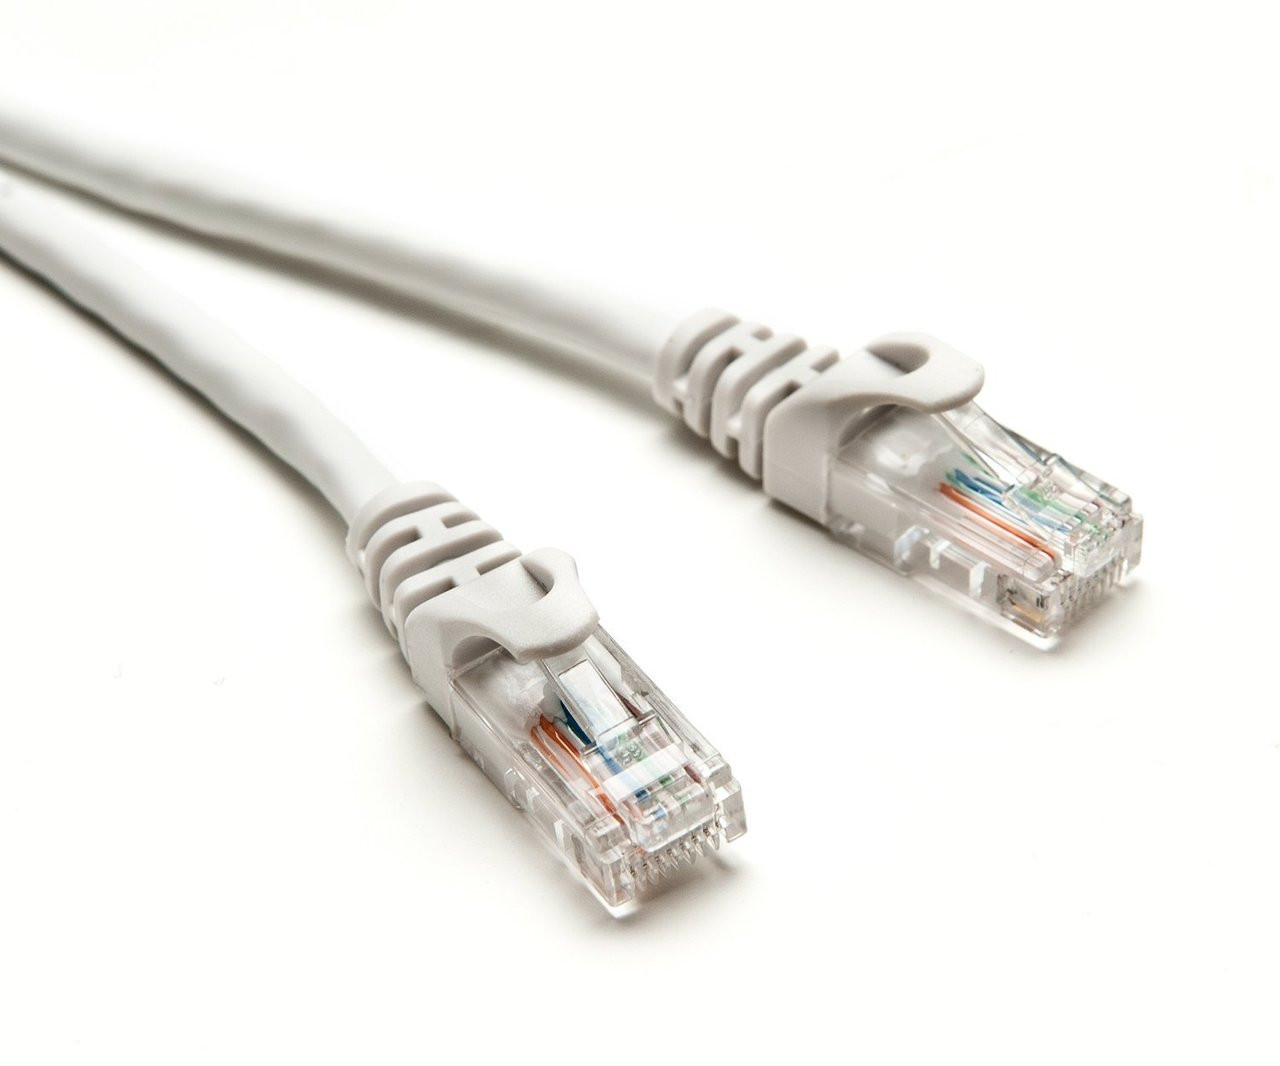 Product image for 1.5M White Cat6 Cable   CX Computer Superstore